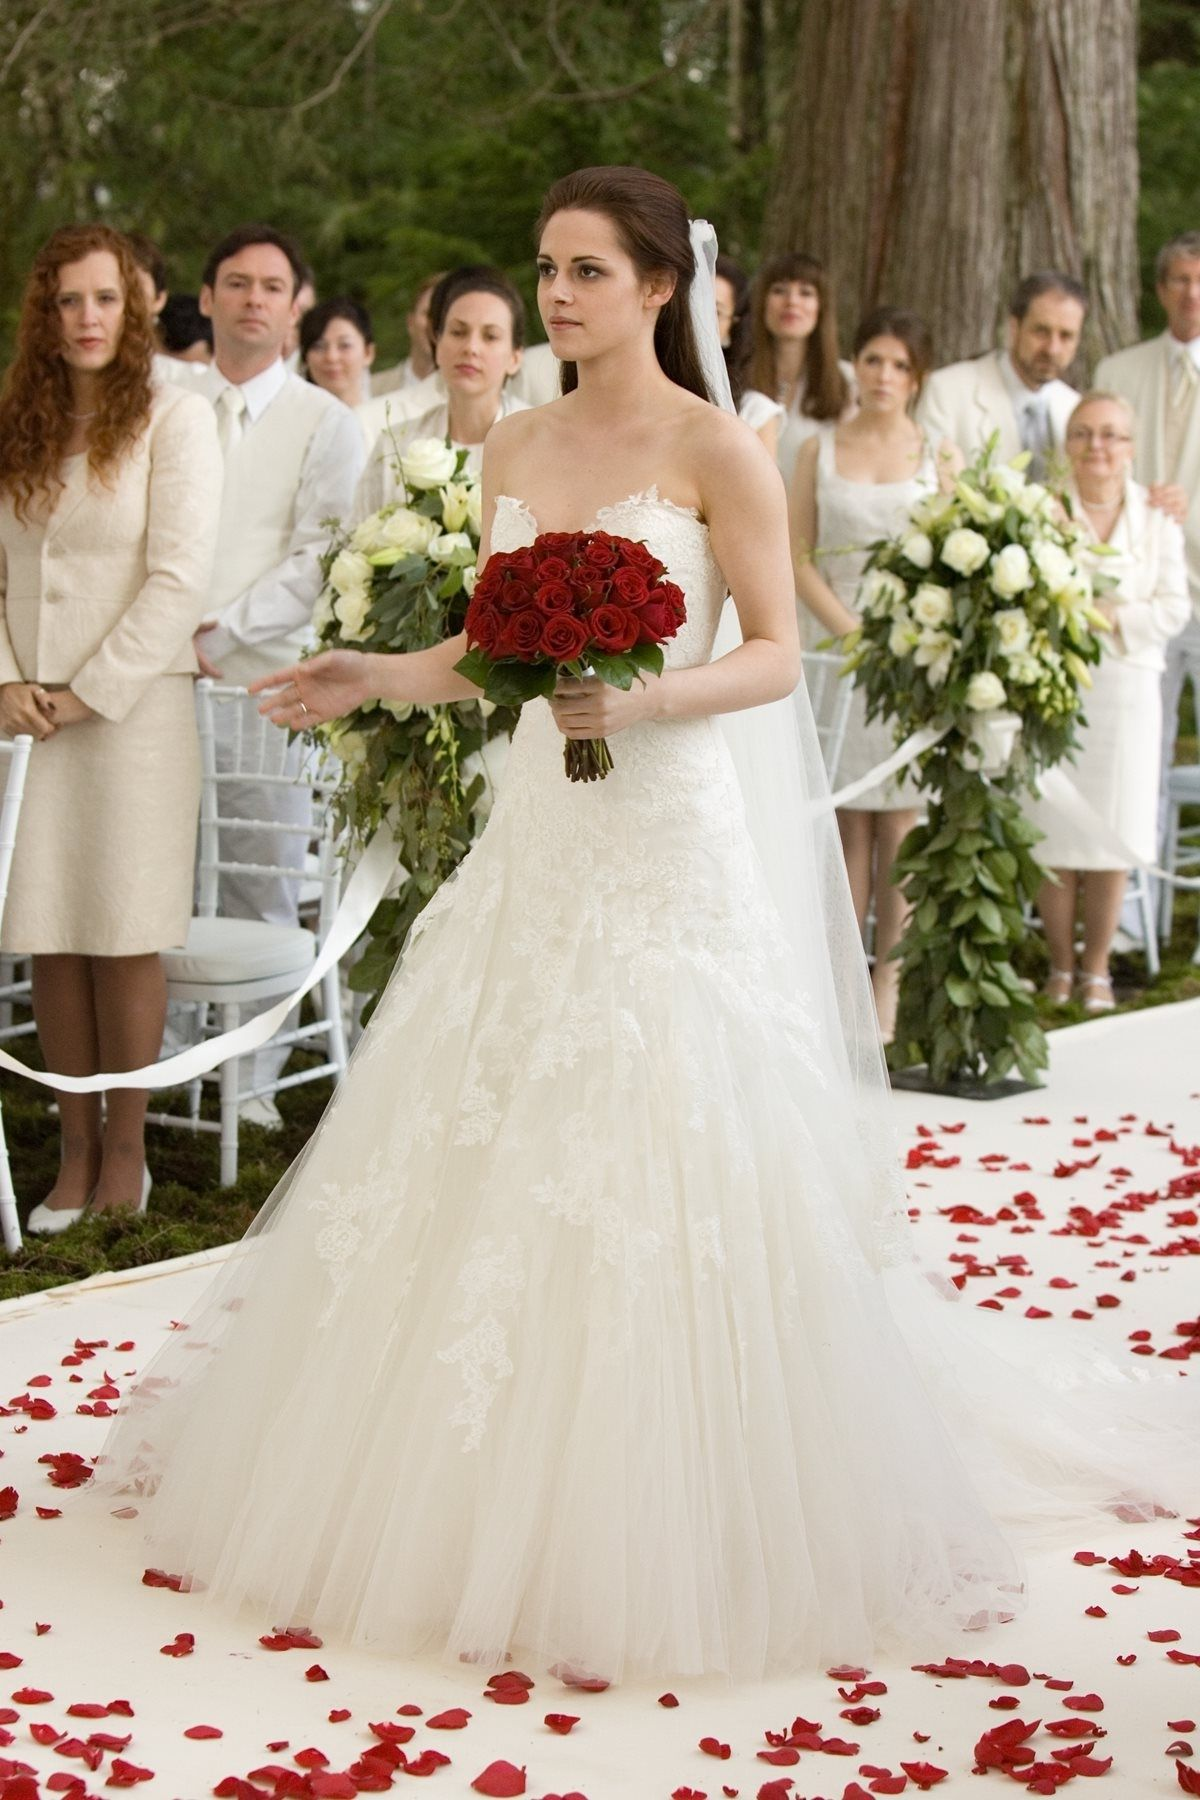 Bella Swan Wedding Dress In Her Dream Wedding Dress Pinterest